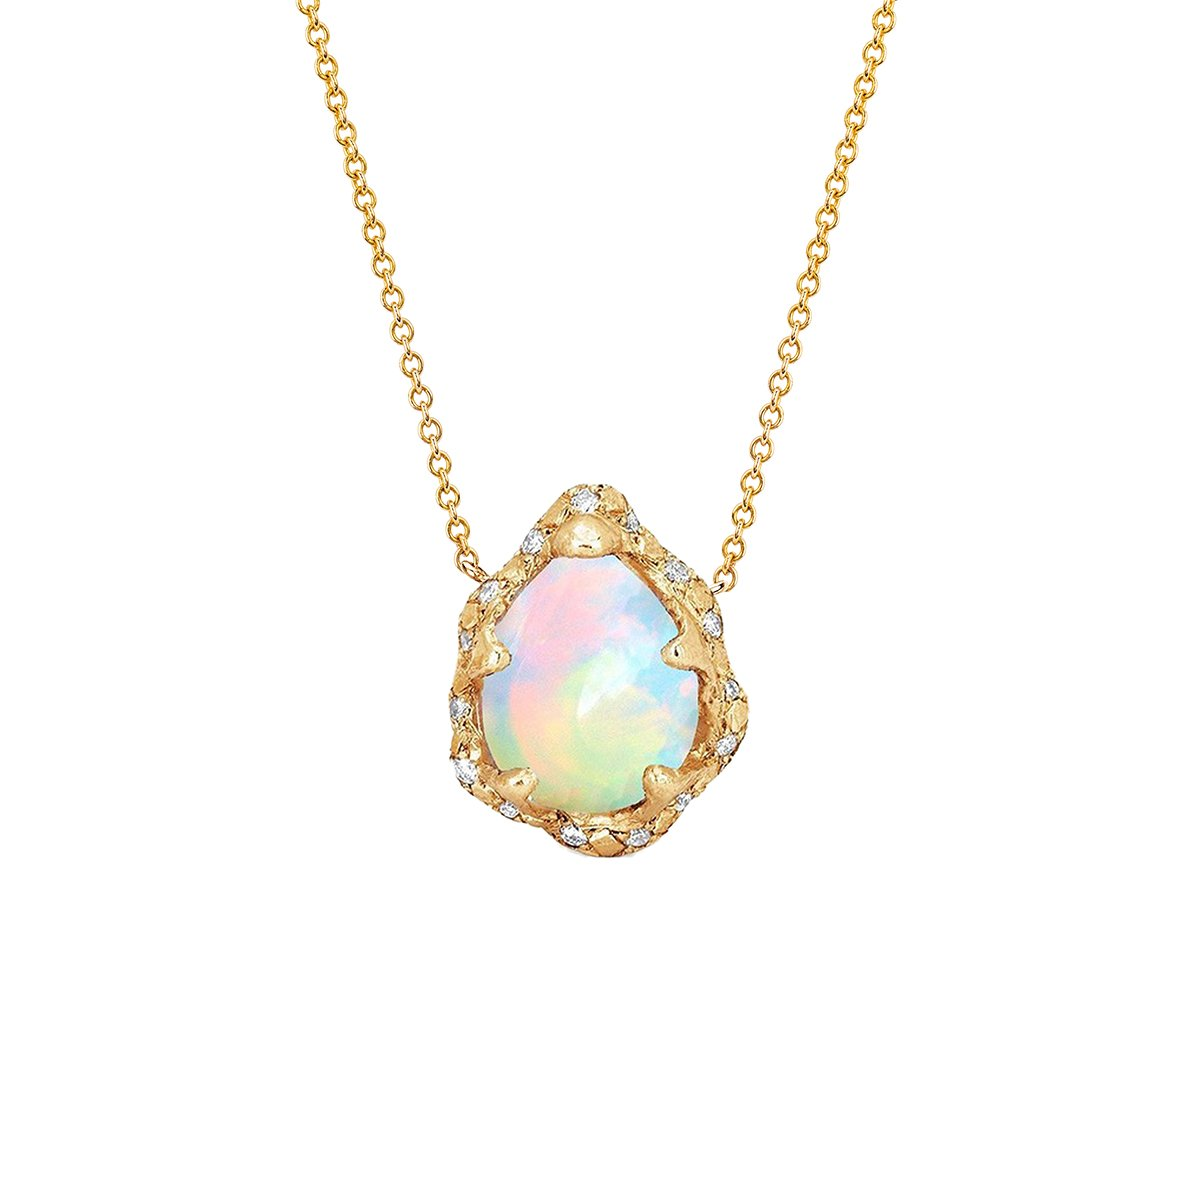 Baby Queen Water Drop White Opal Necklace with Sprinkled Diamonds